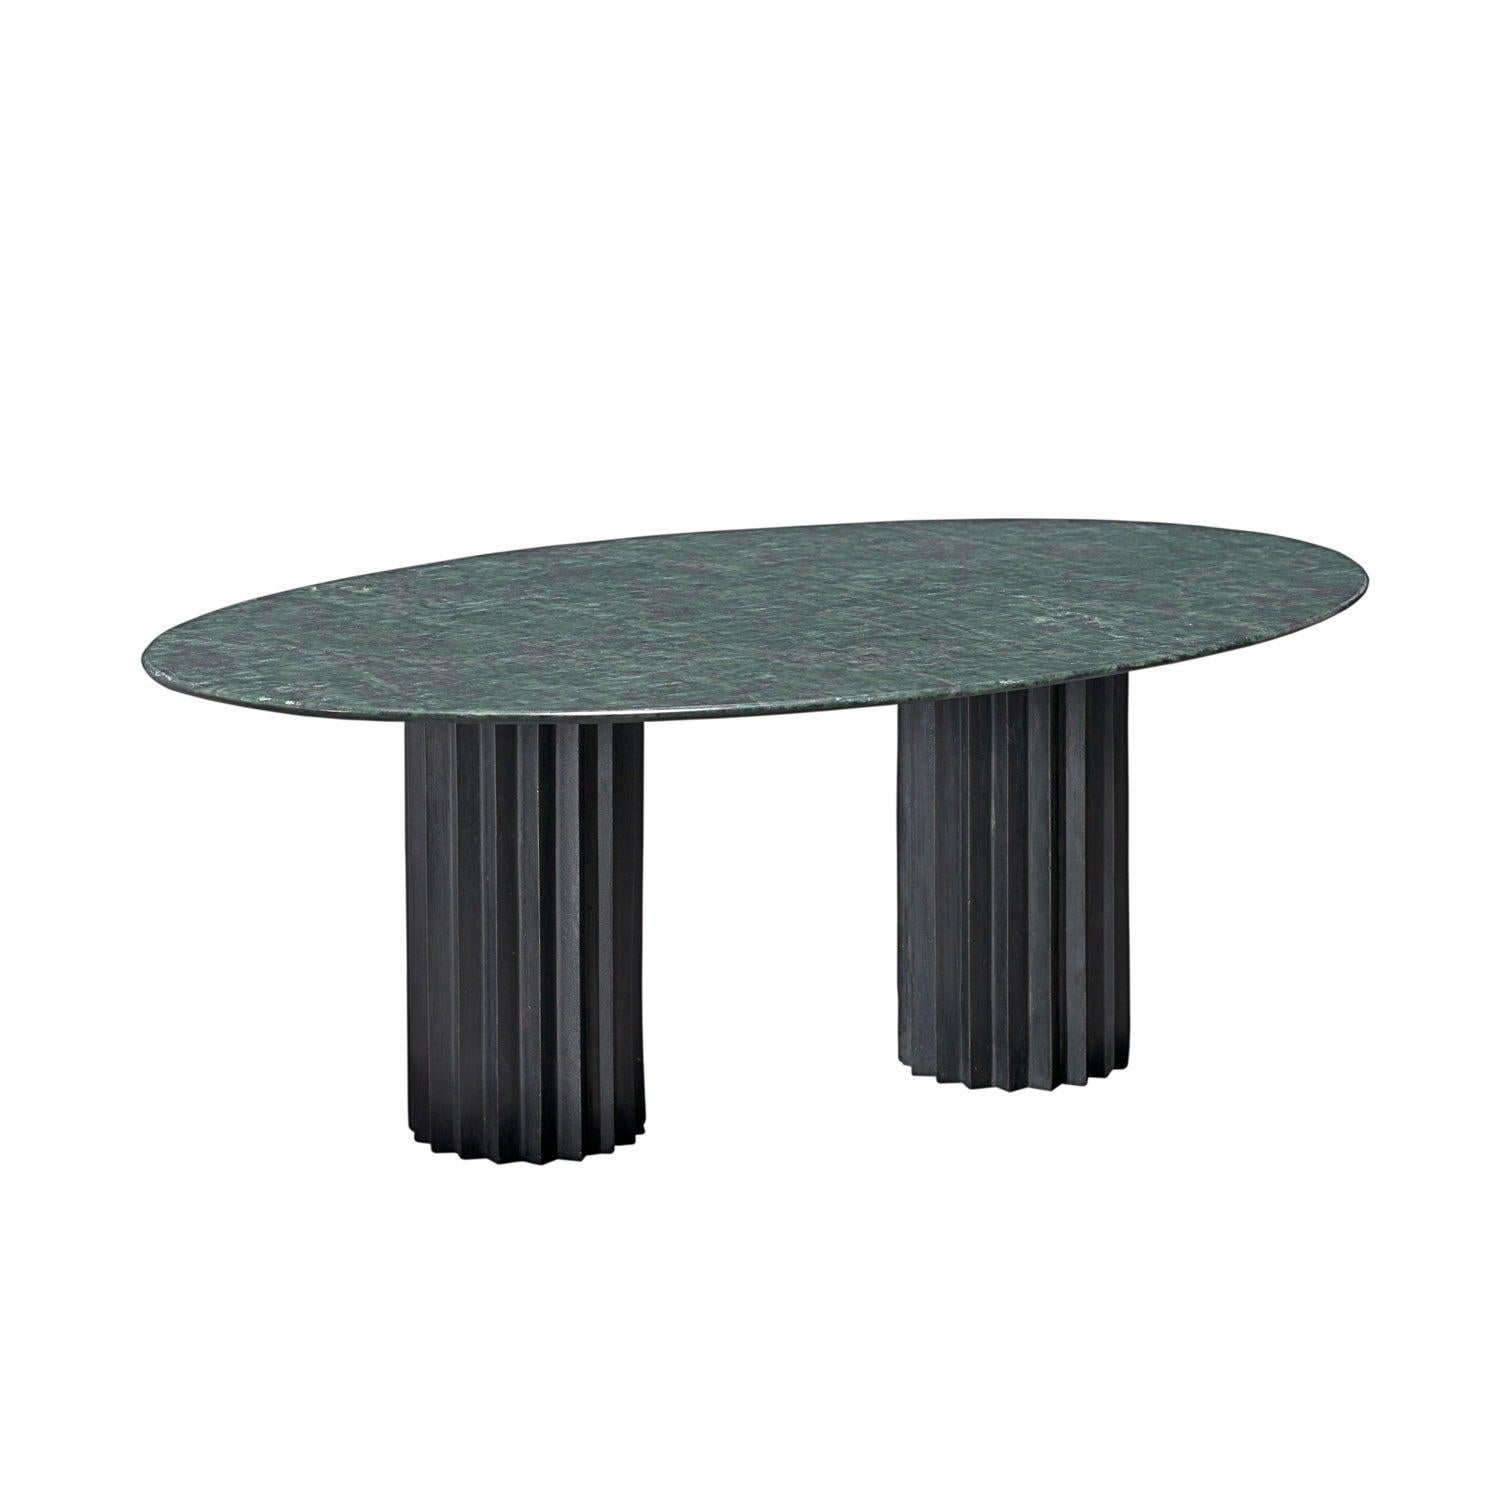 Doris Oval Double Pedestal Dining Table in Green Marble and Blackened Bronze